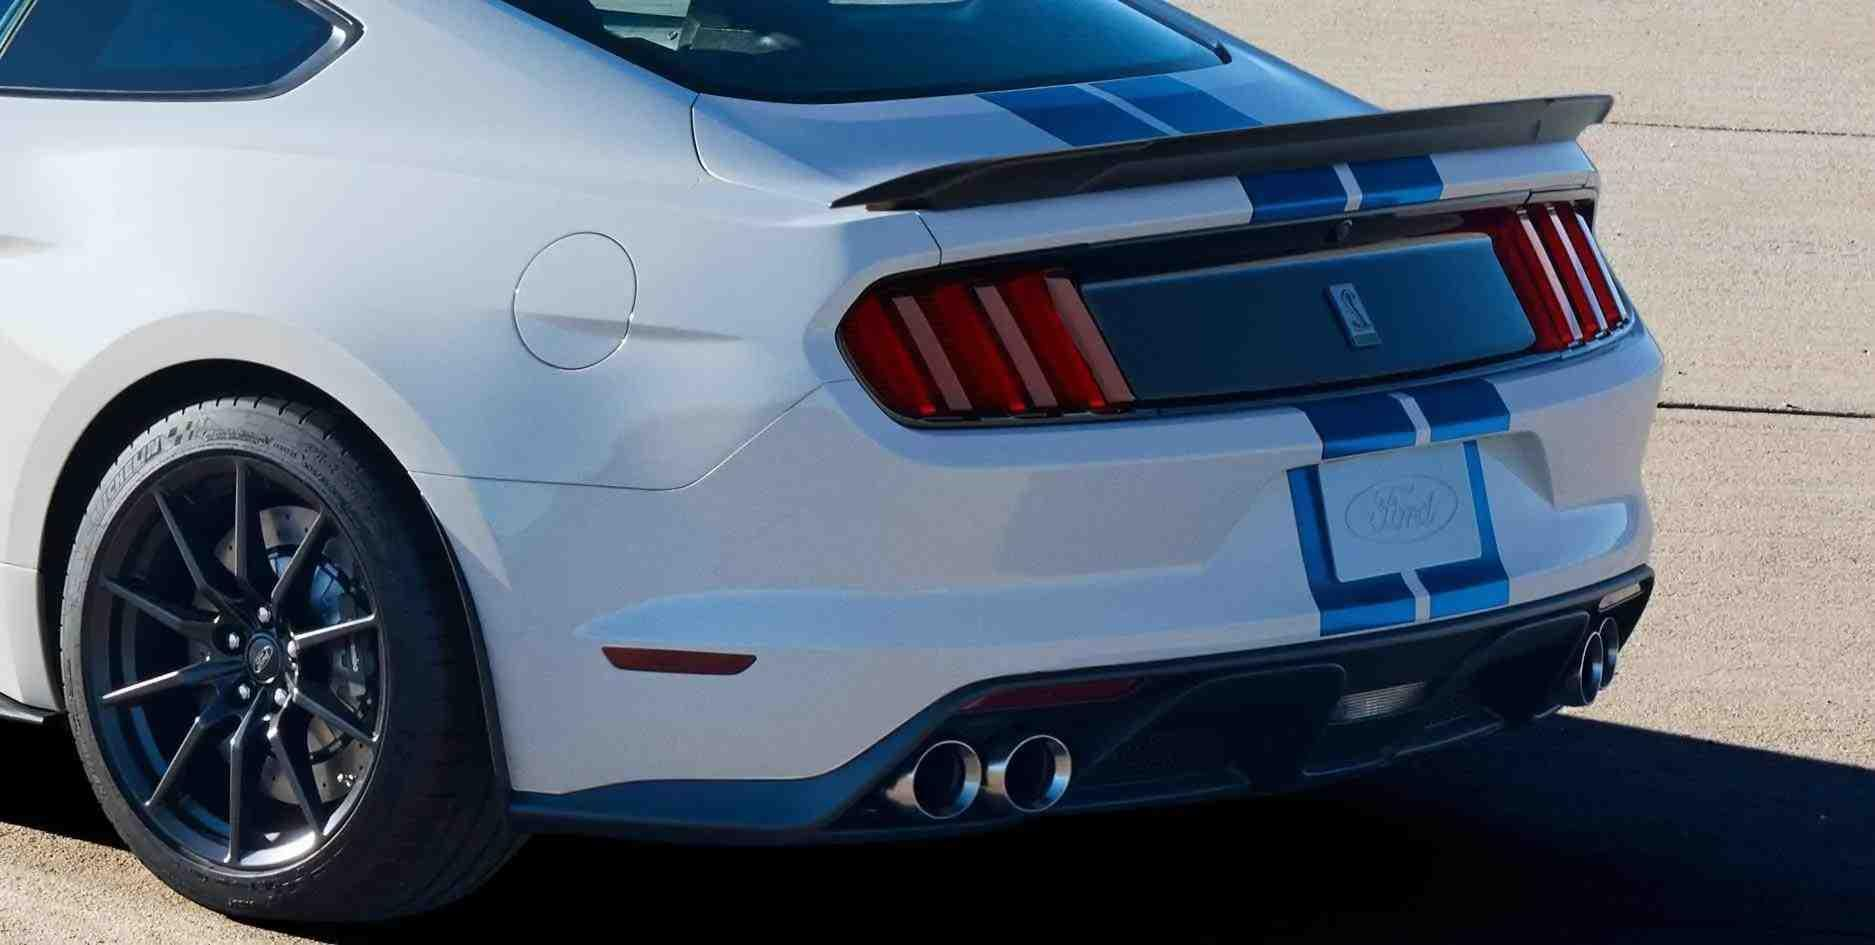 Shelby GT350 Rear Diffuser